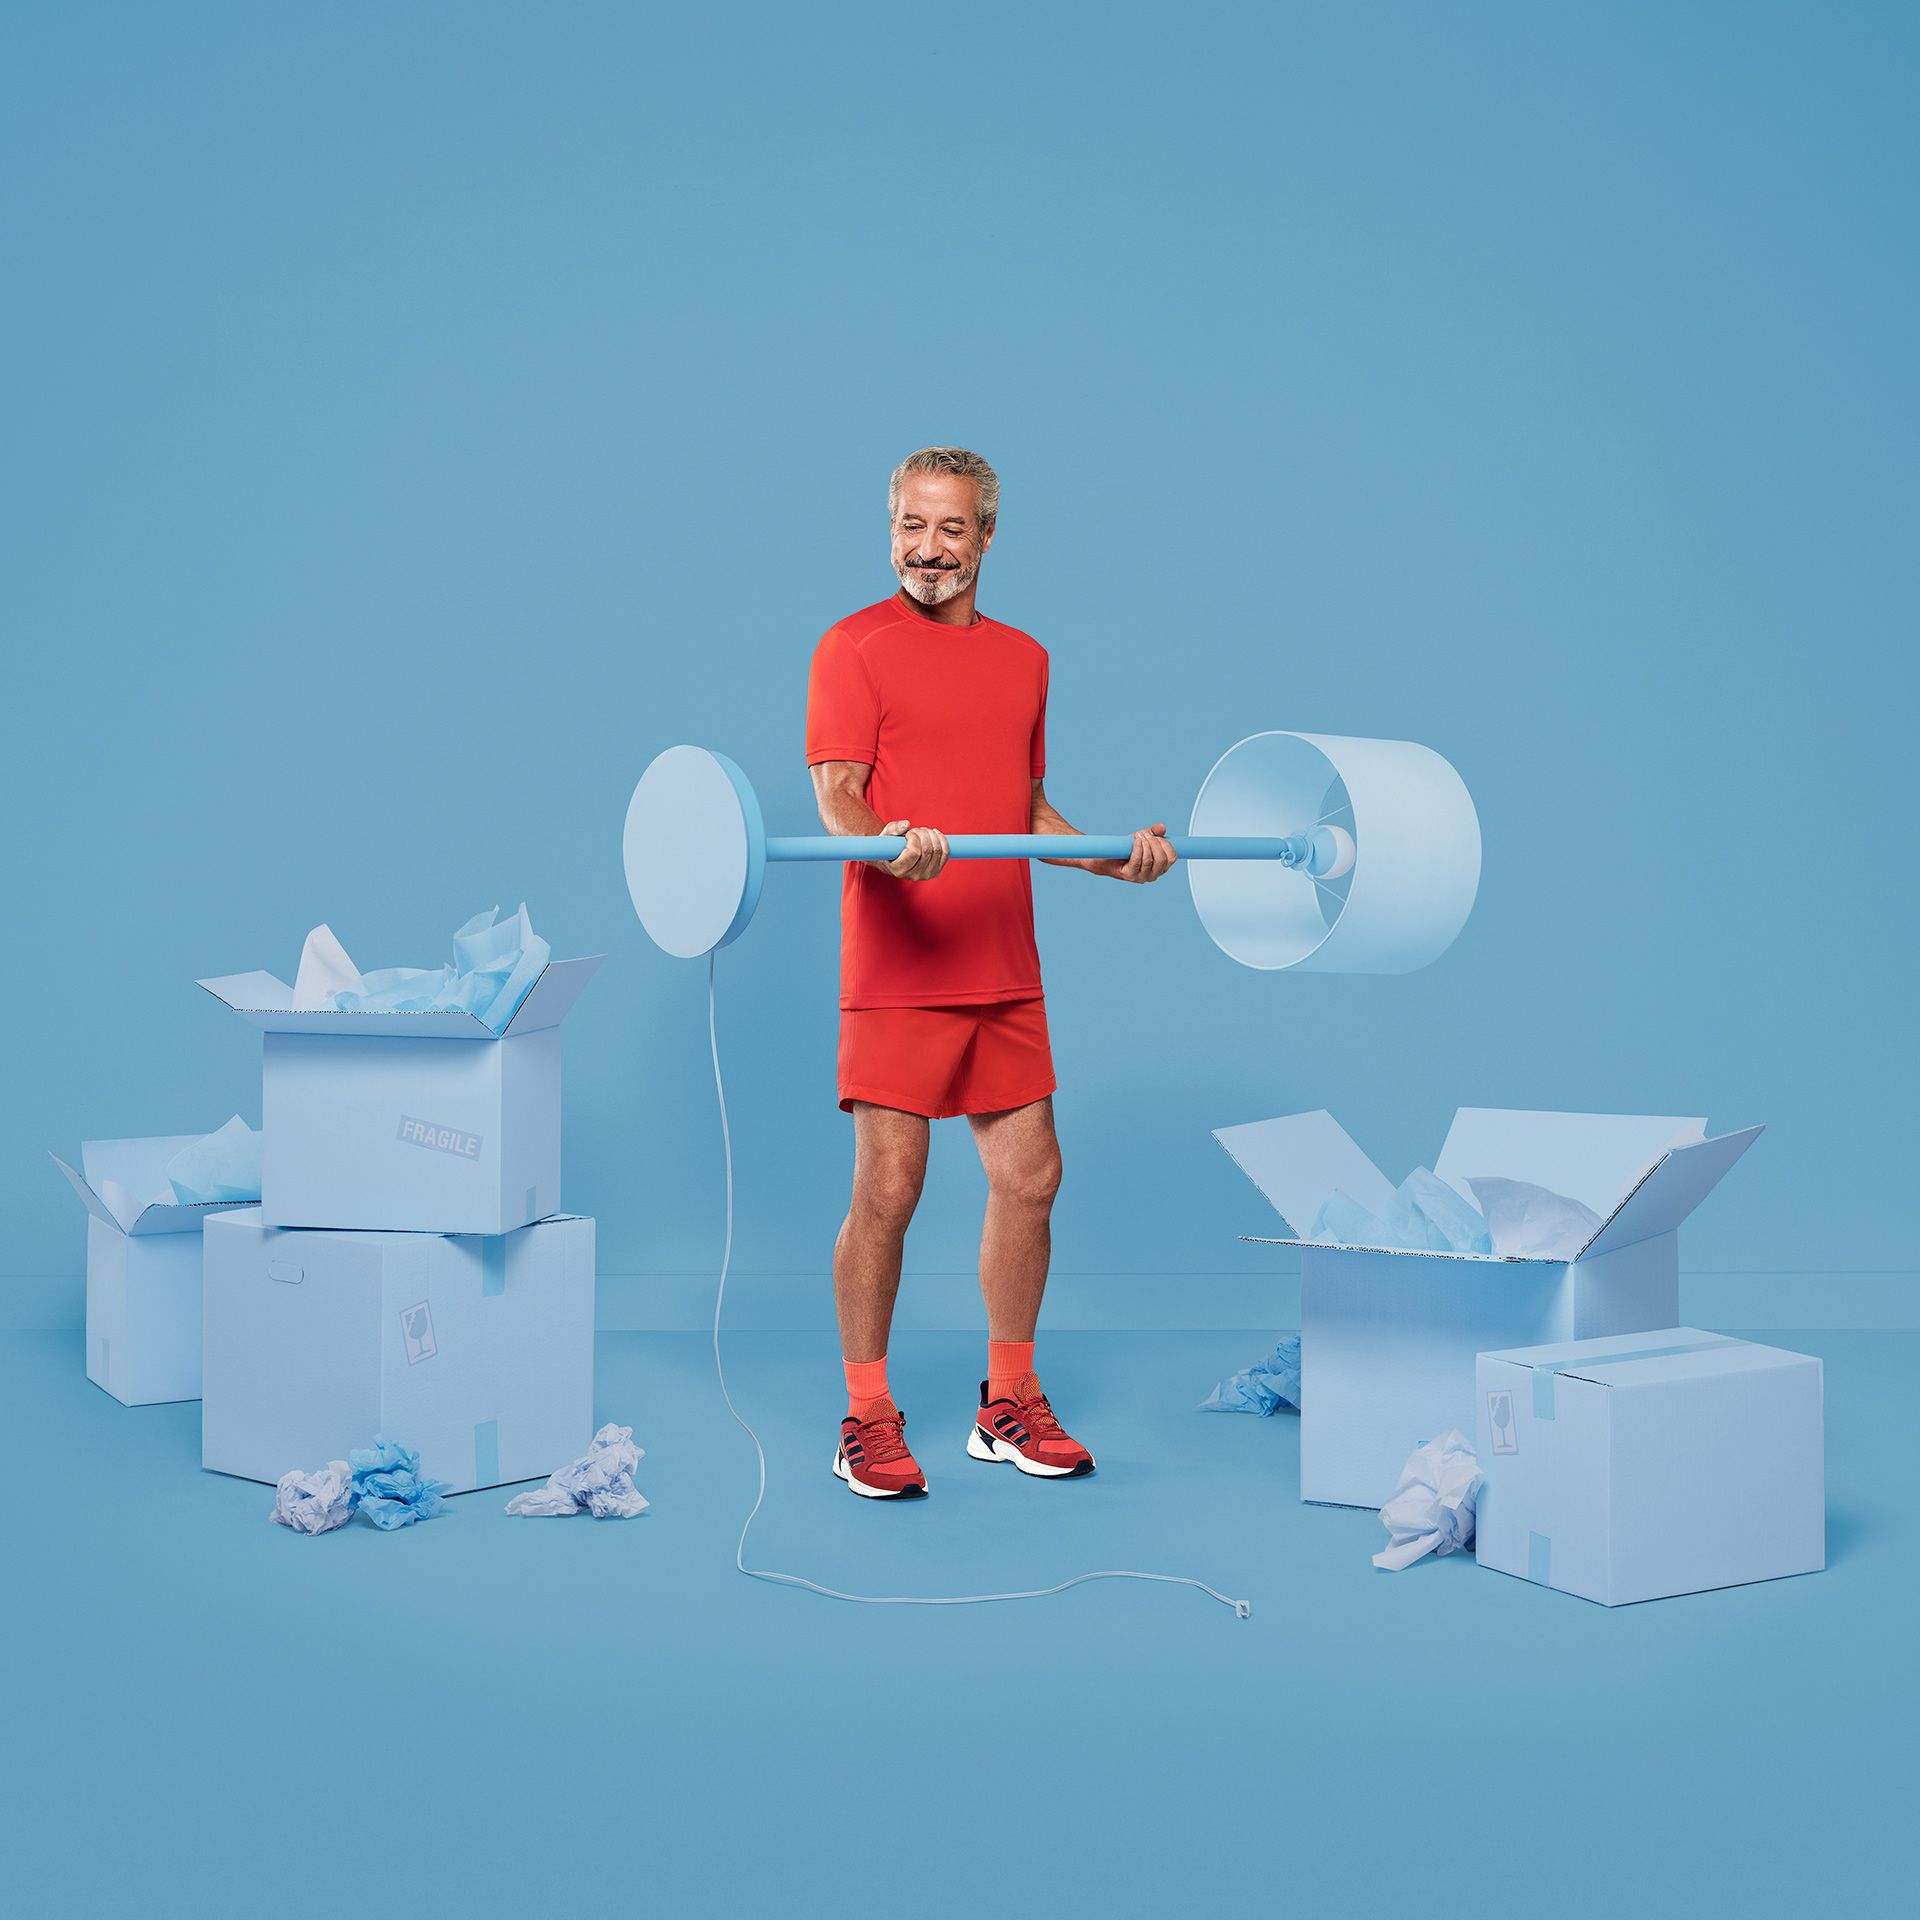 white male using lamp as weight dressed in red on blue background for YMCA by Jocelyn Michel